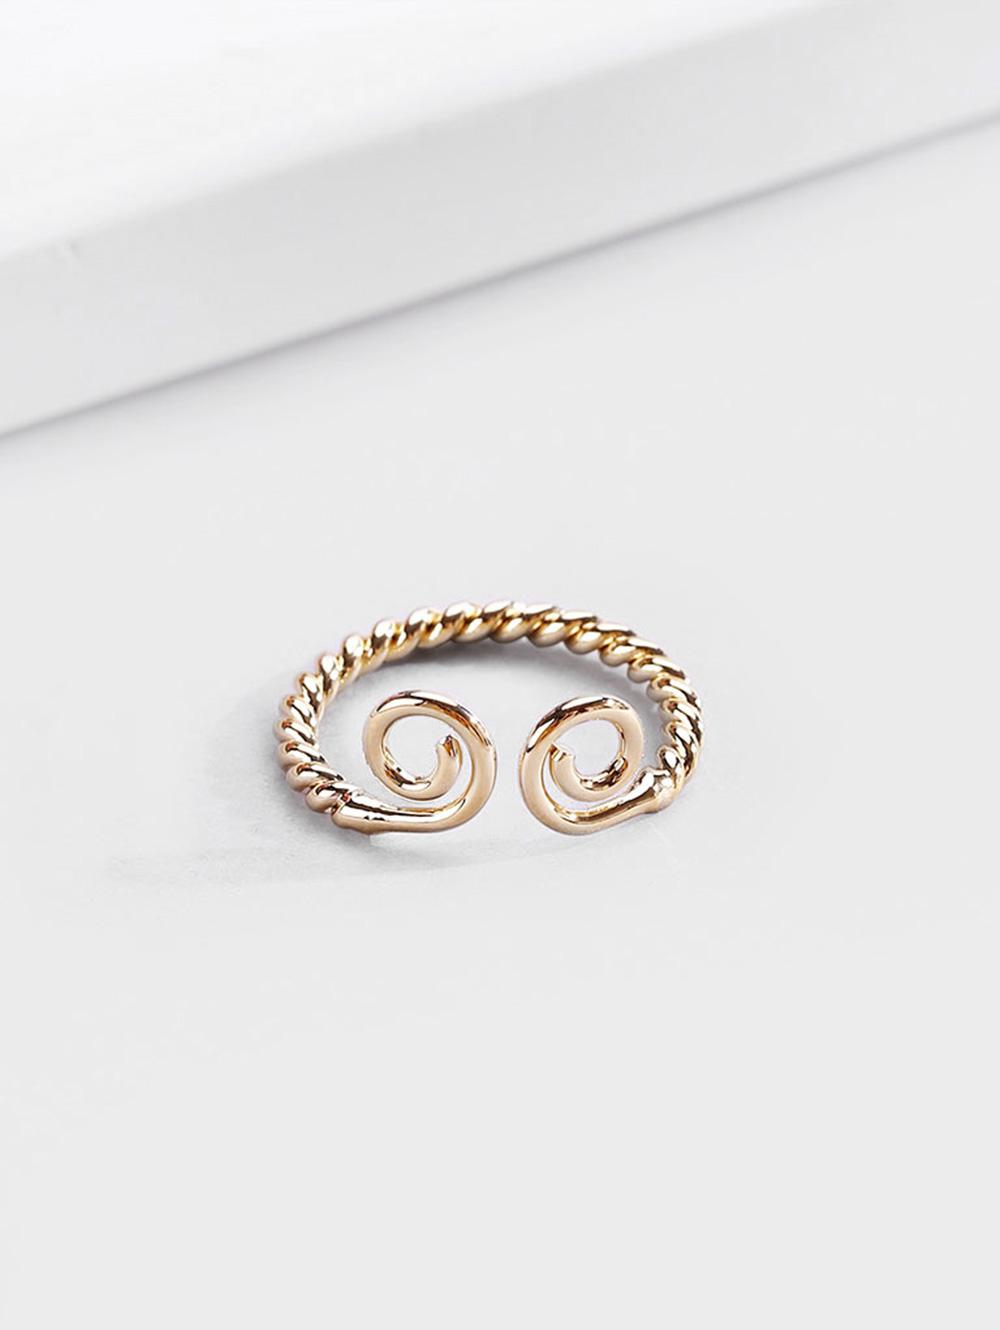 18K Gold Plated Adjustable Twisted Finger Cuff Ring